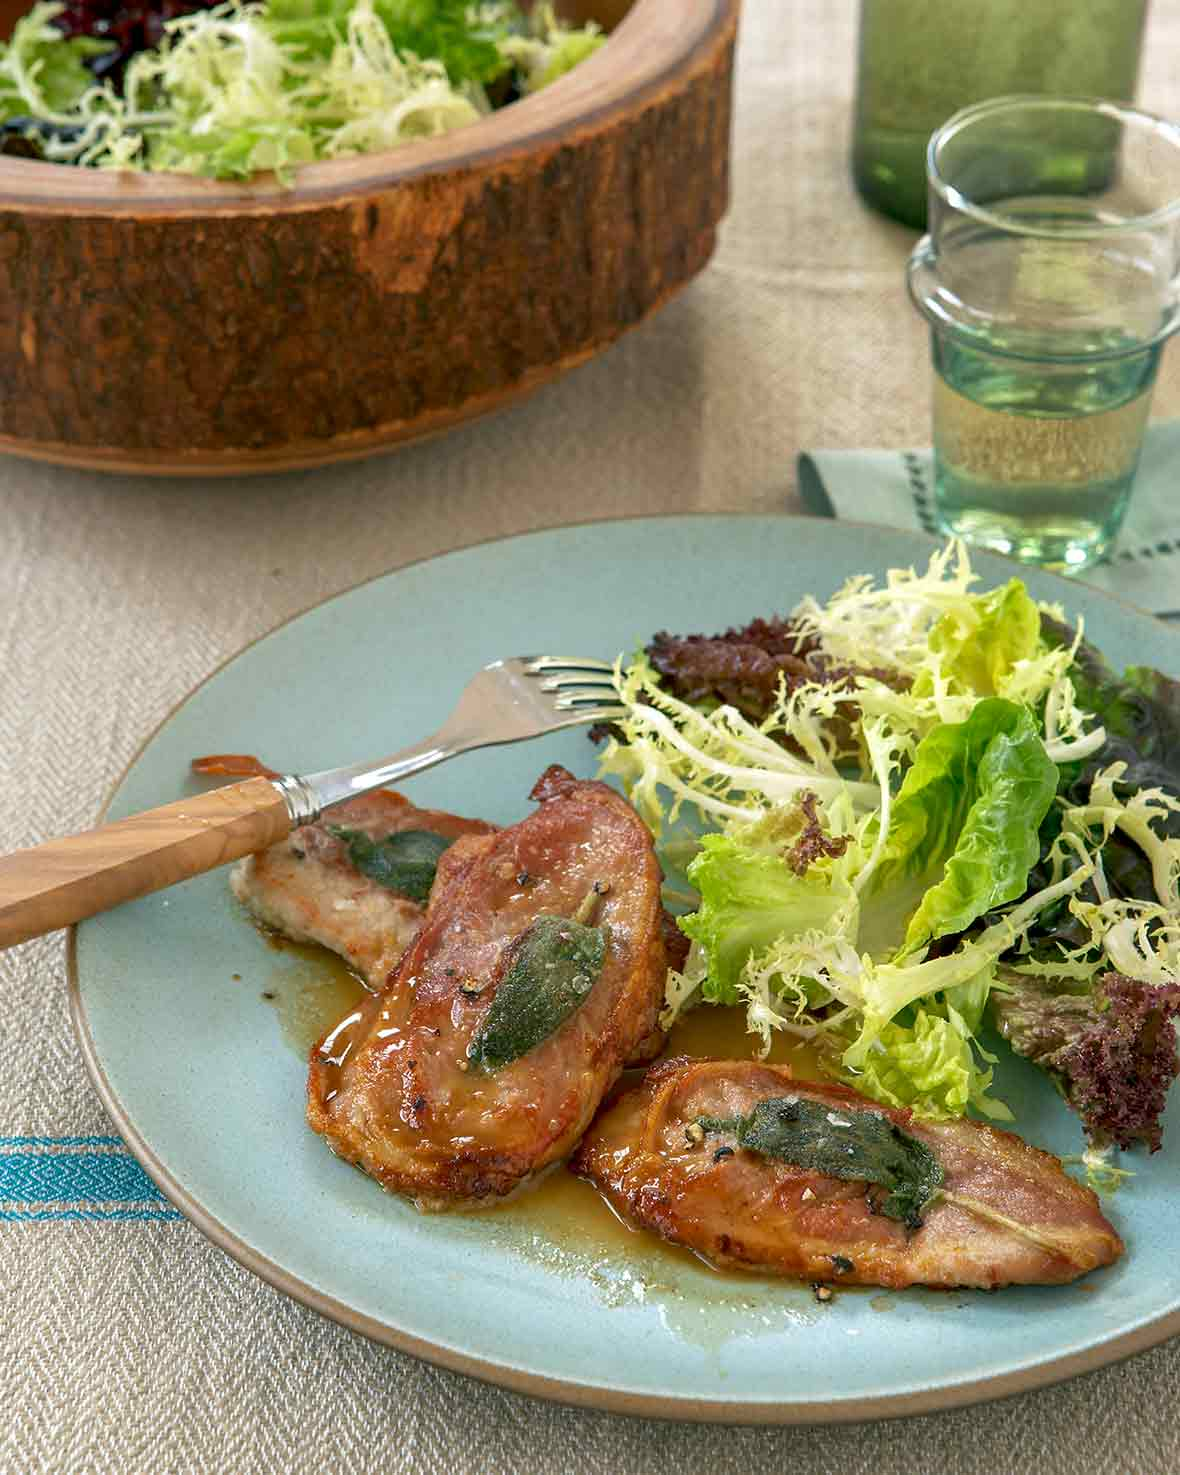 Blue plate with two veal scaloppine topped with prosciutto and sage, a salad, salad bowl, wine